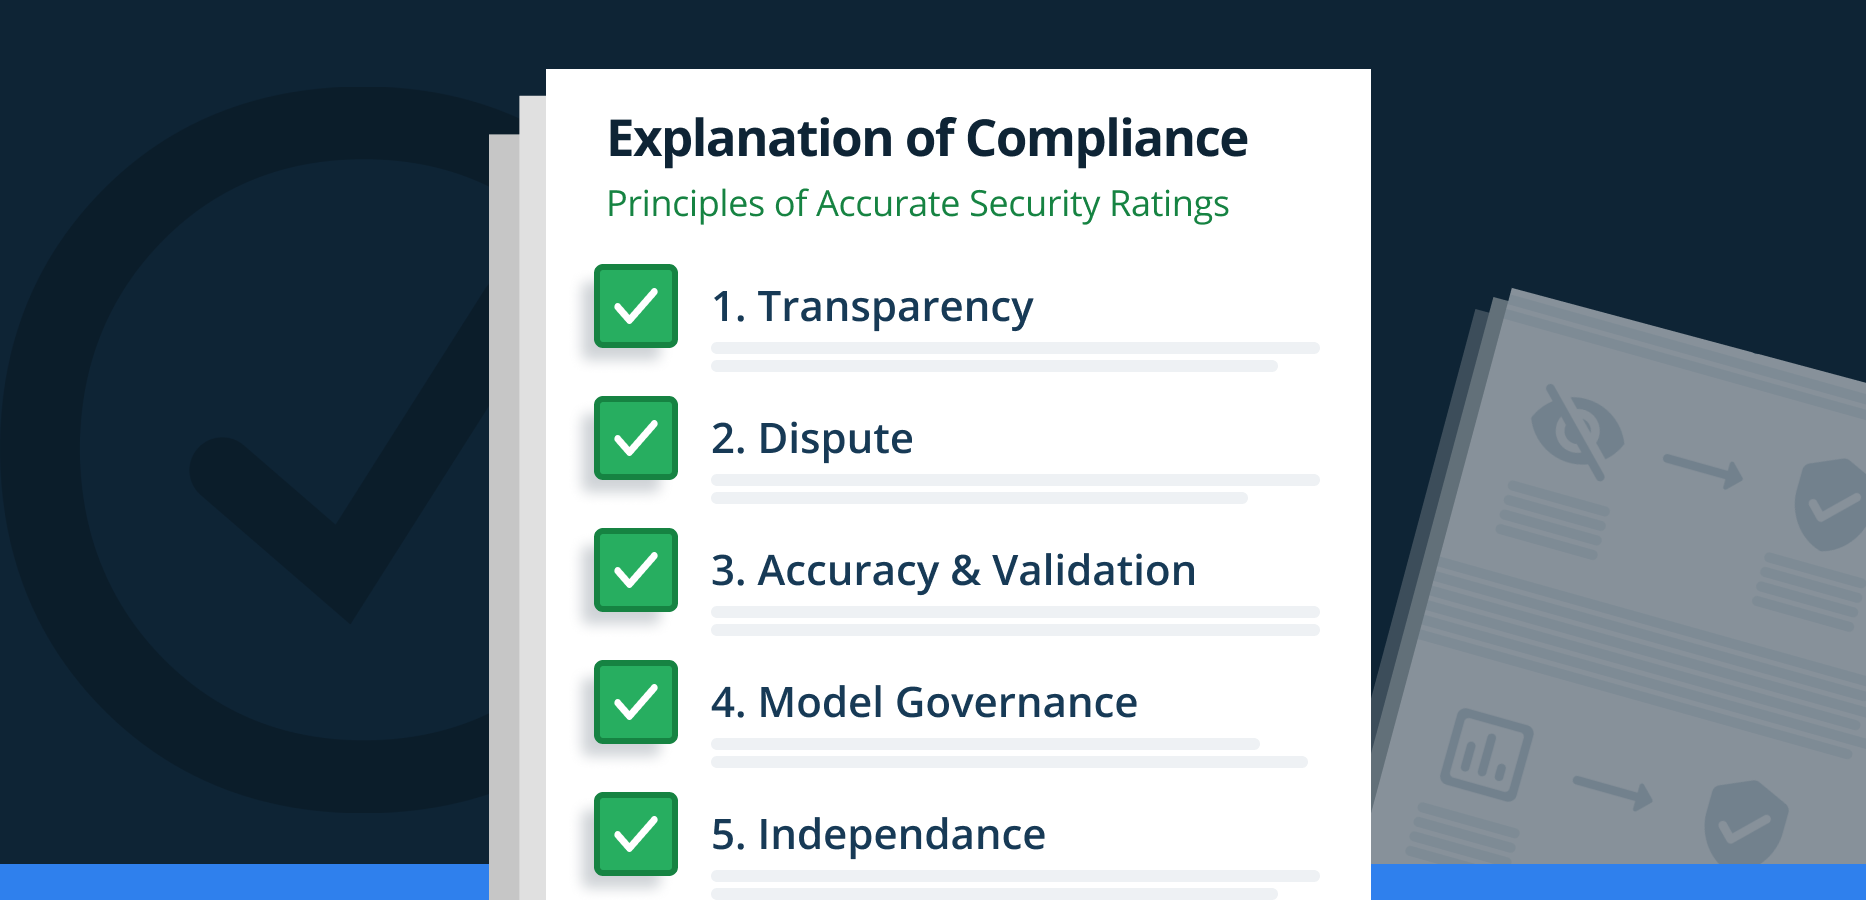 RiskRecon Explanation of Compliance with U.S. Chamber of Commerce Principles for Fair and Accurate Security Ratings